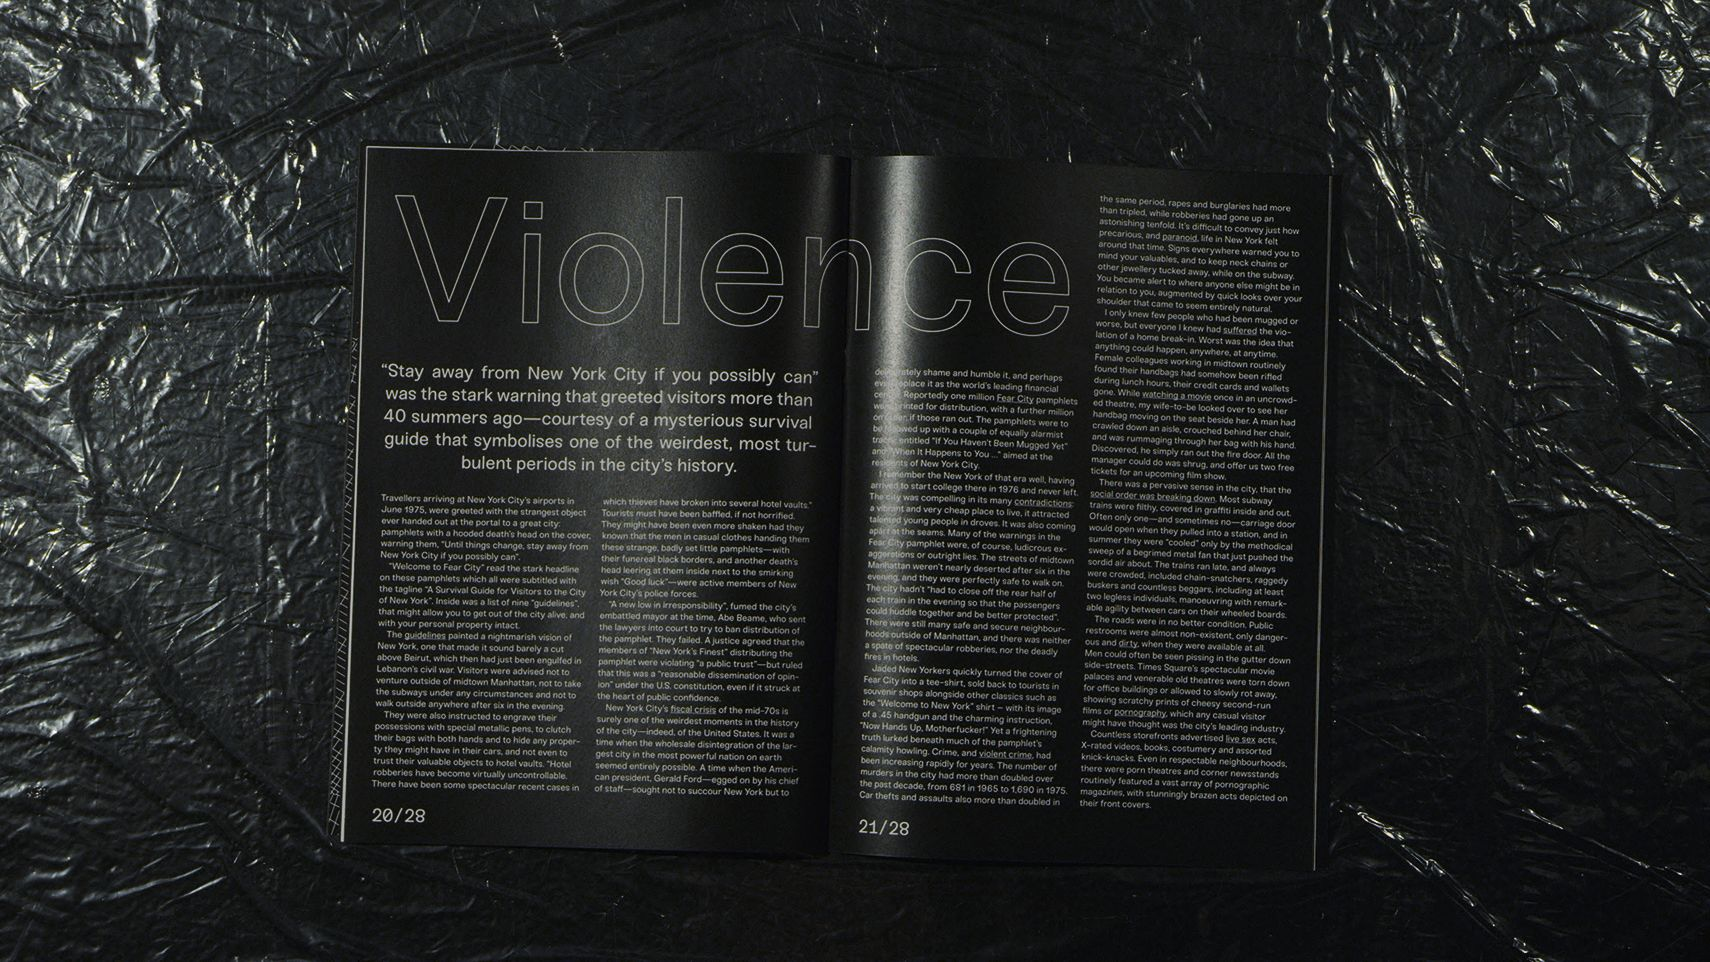 Taxi Driver Magazine Violence